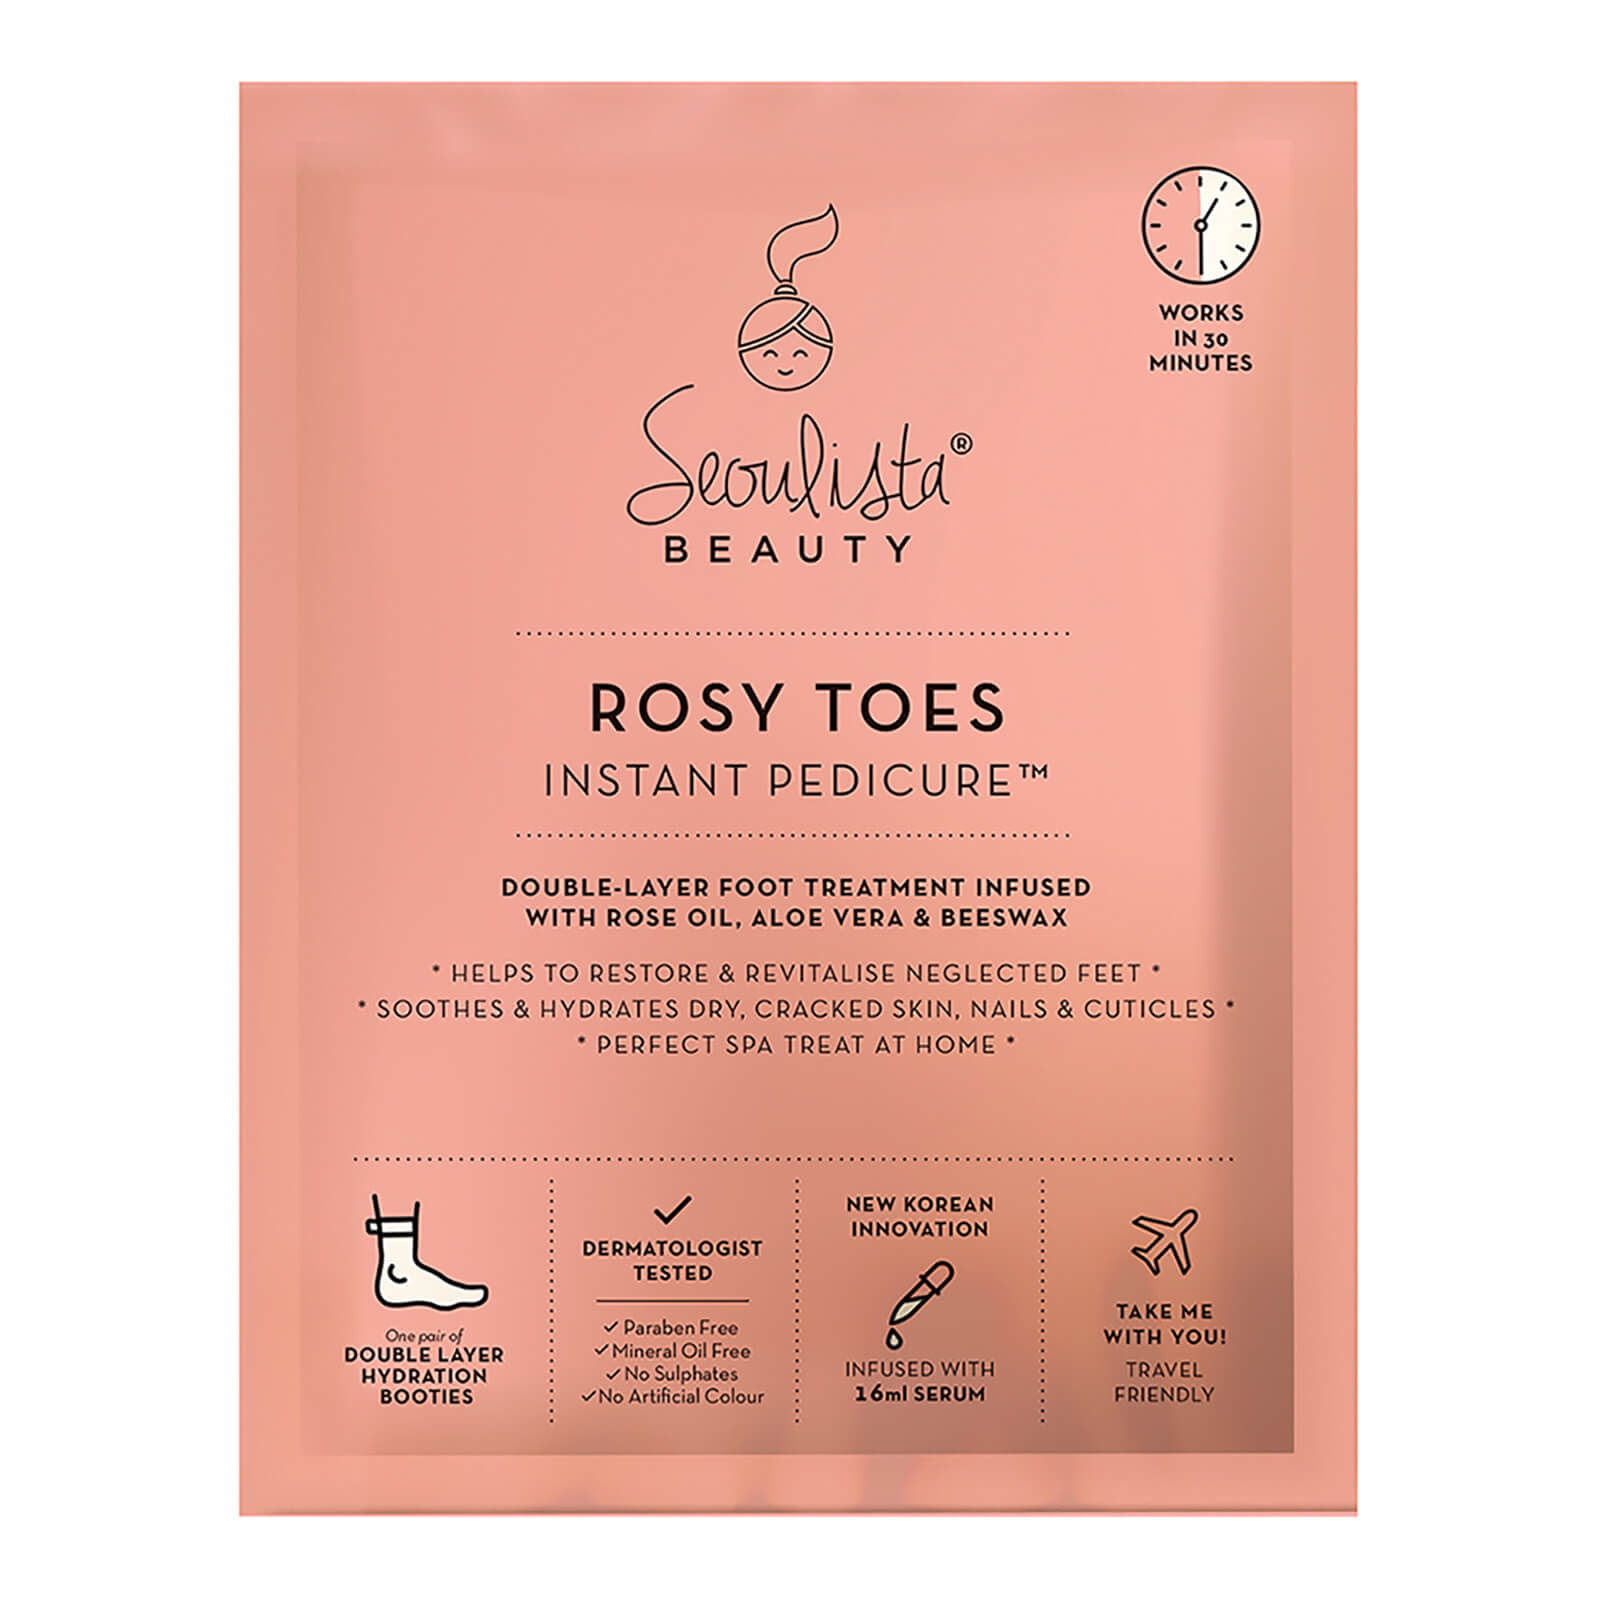 Seoulista Beauty Rosy Toes Instant Pedicure